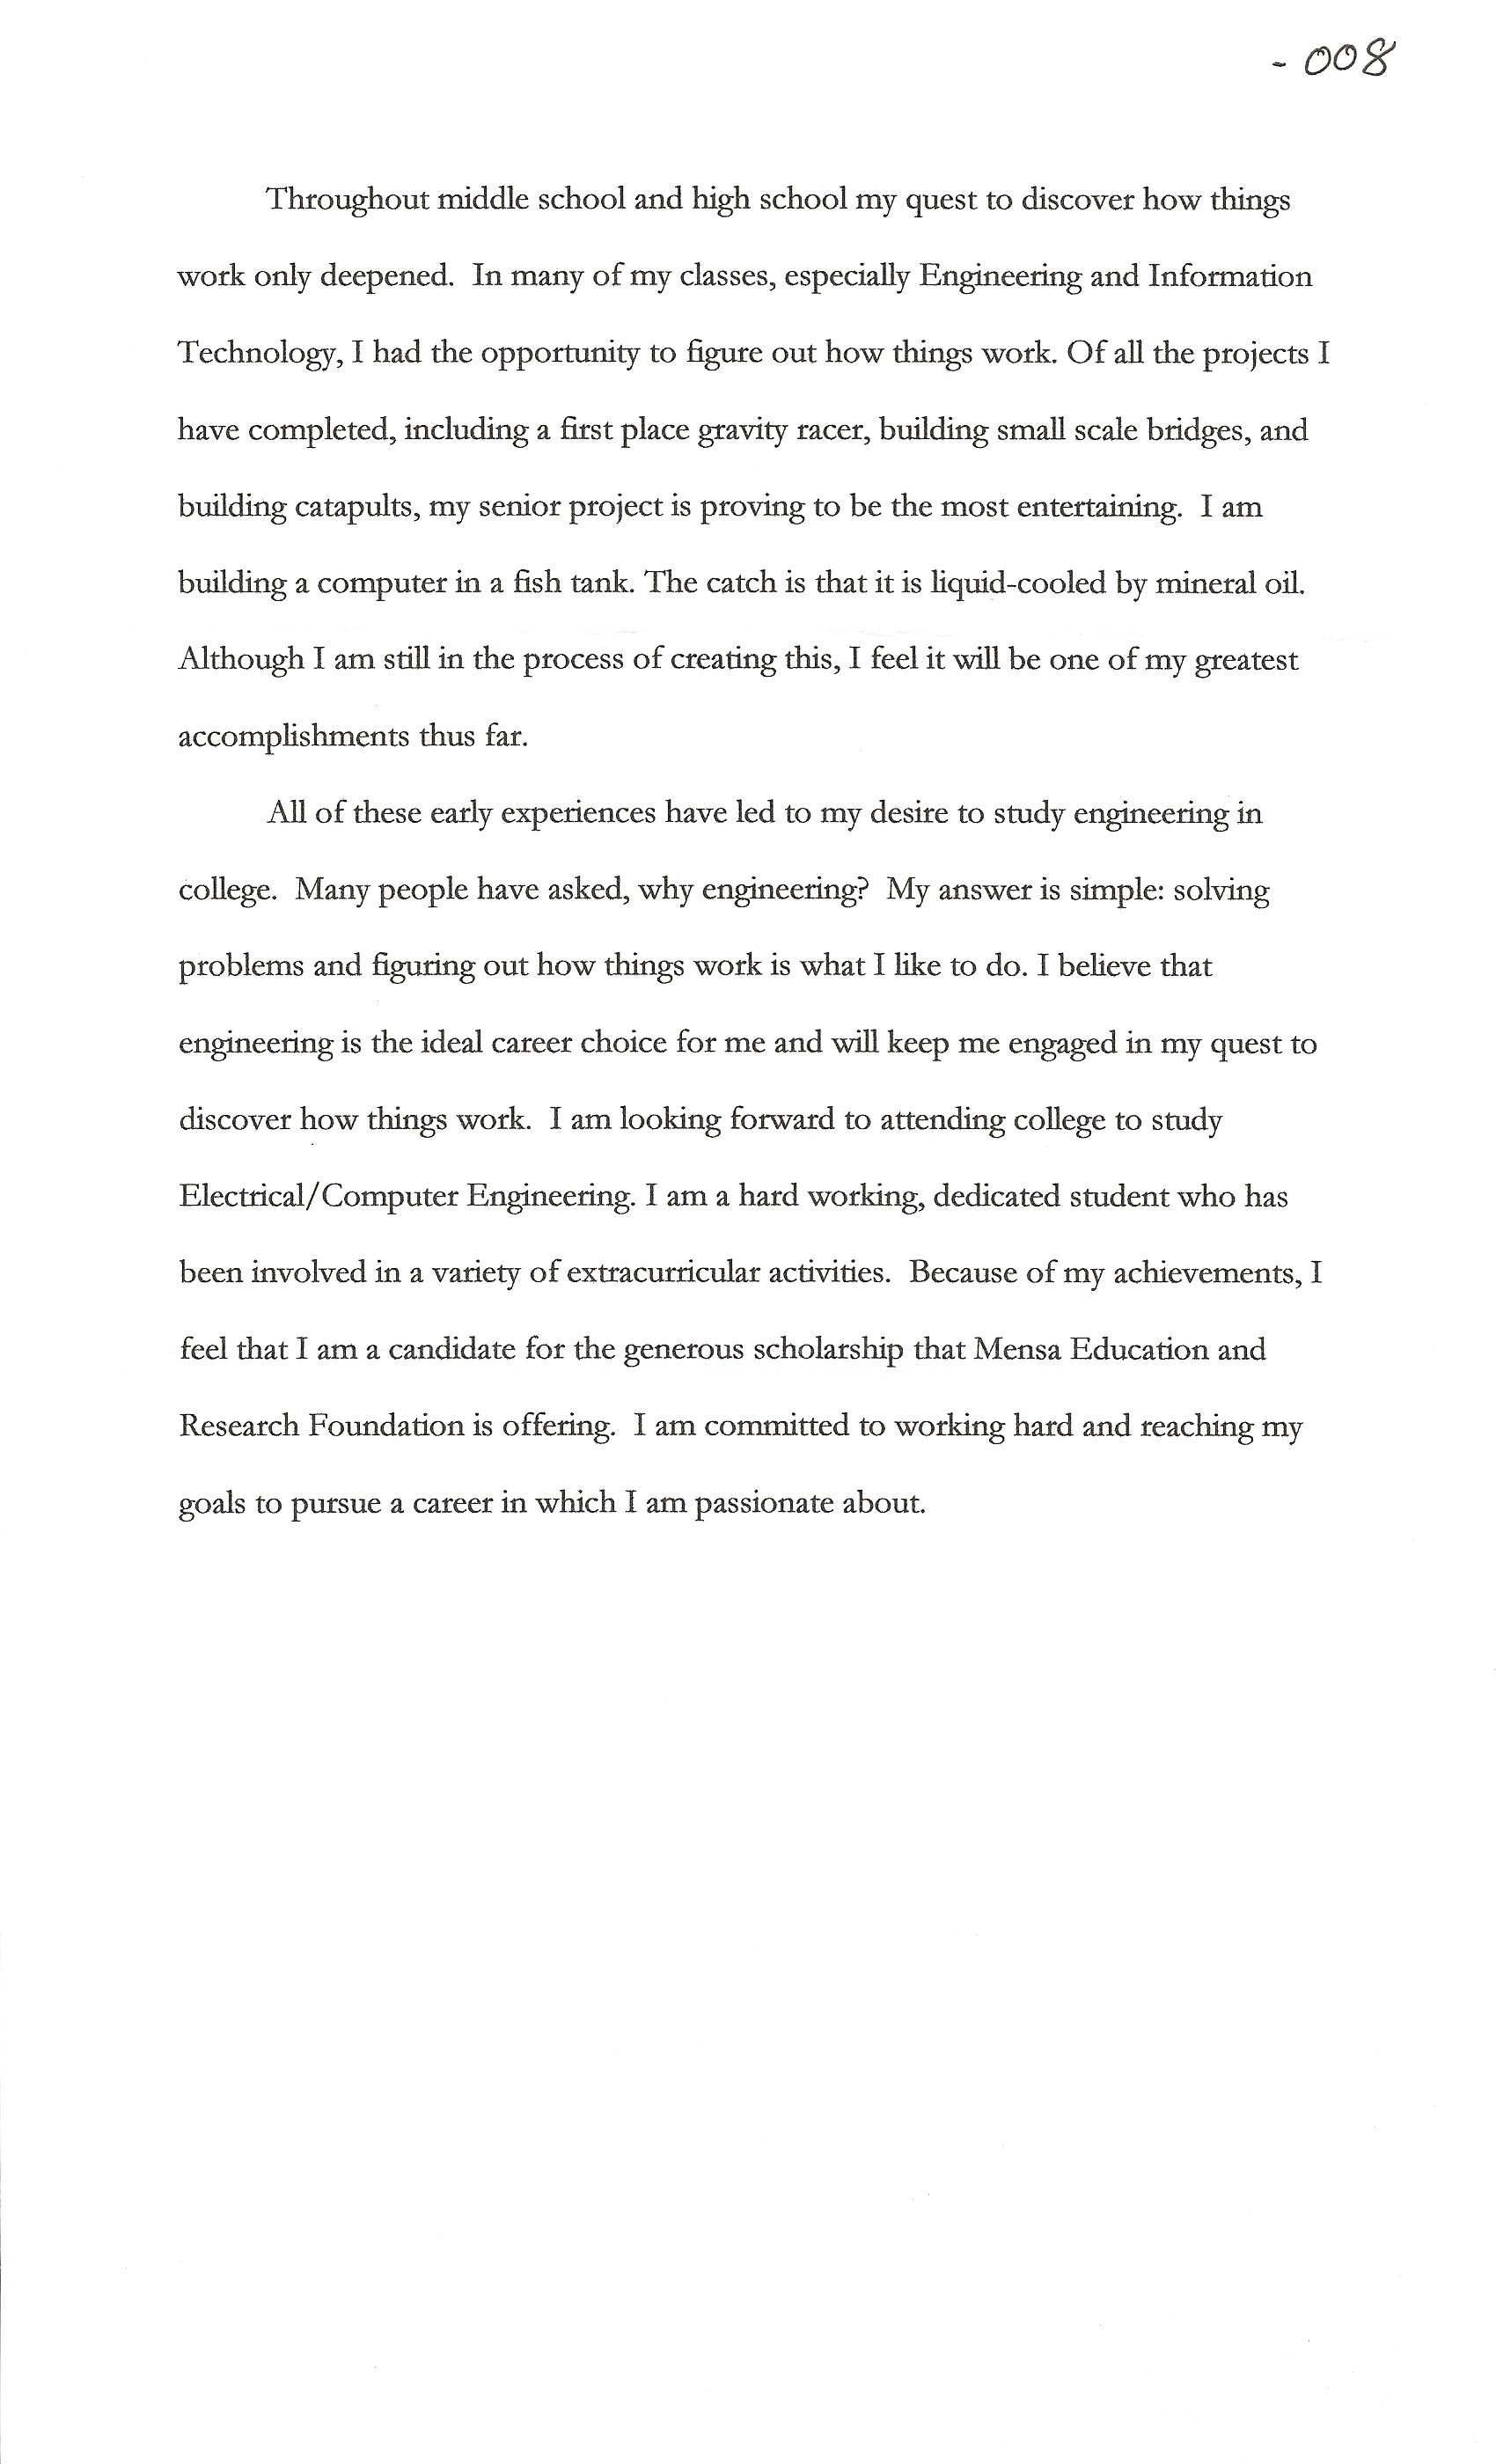 goals essay examples resume cv cover letter - Example Essays For Scholarships